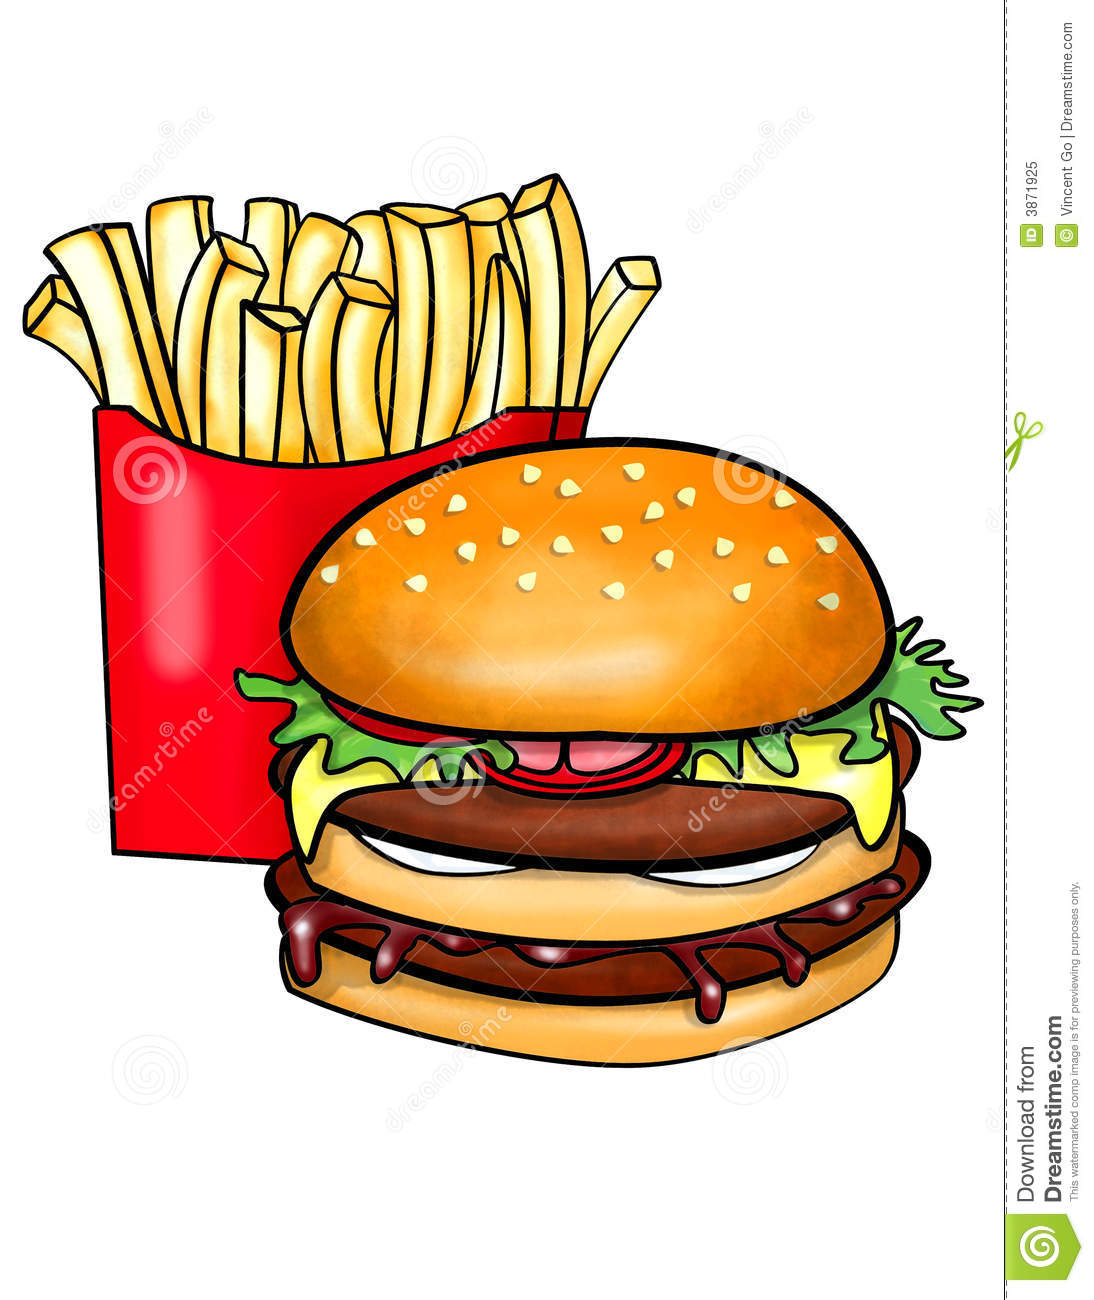 Burger clipart double Cheeseburger Clipart cliparts And Fries